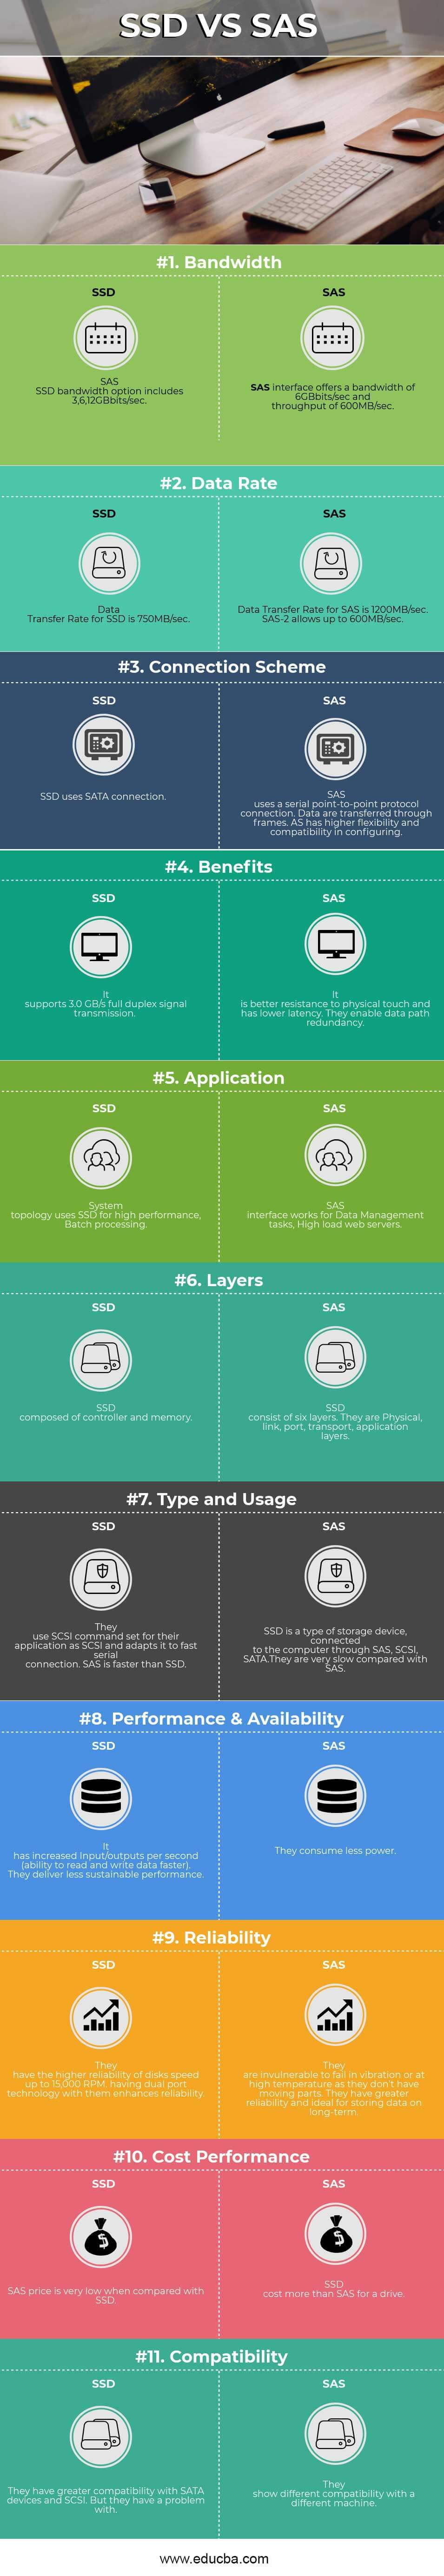 SAS vs SSD | Find Out The 11 Most Awesome Differences